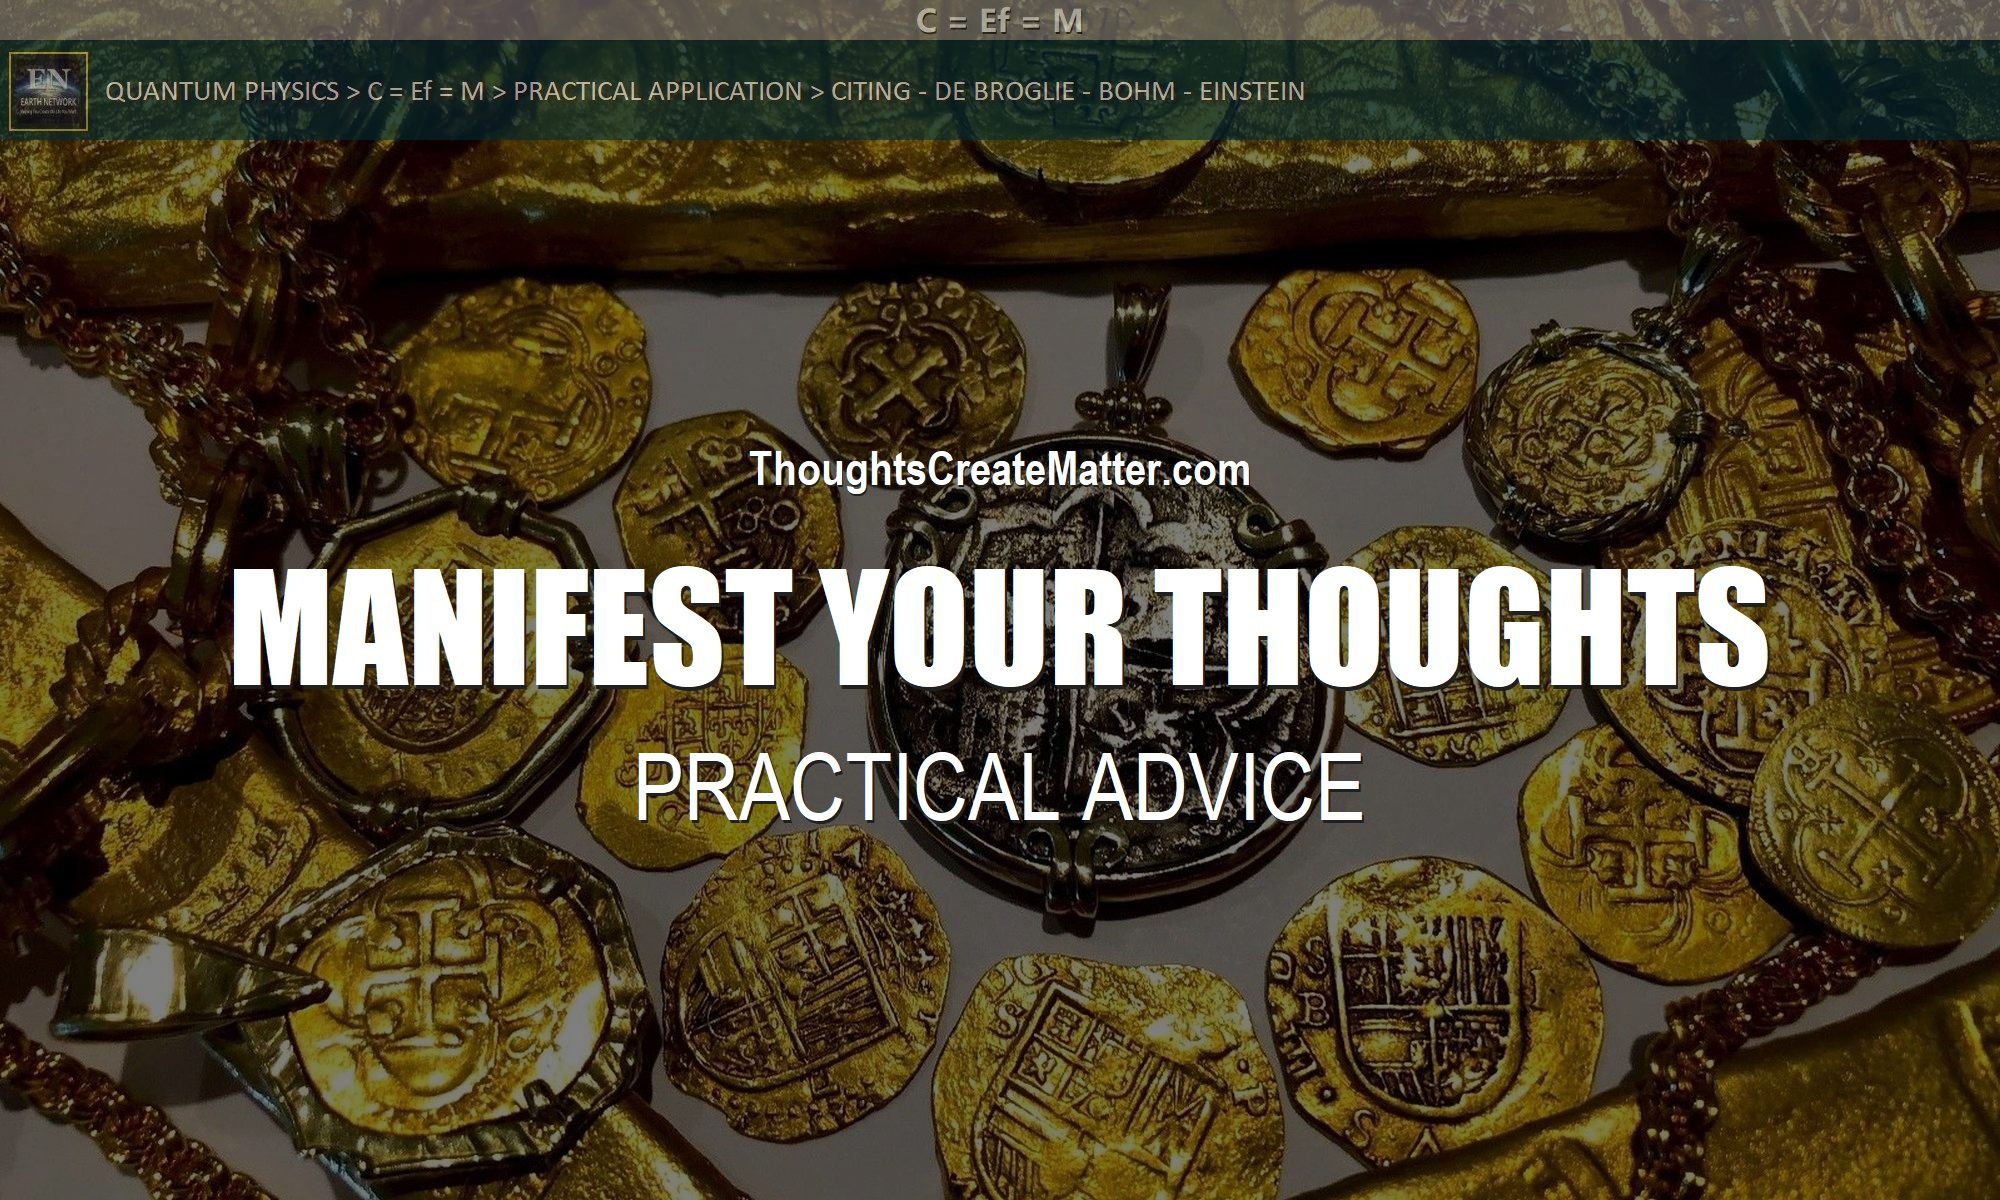 gold depicts how your can manifesting-your-thoughts-how-do-i-manifest-my-thoughts-into-material-events-objects-reality